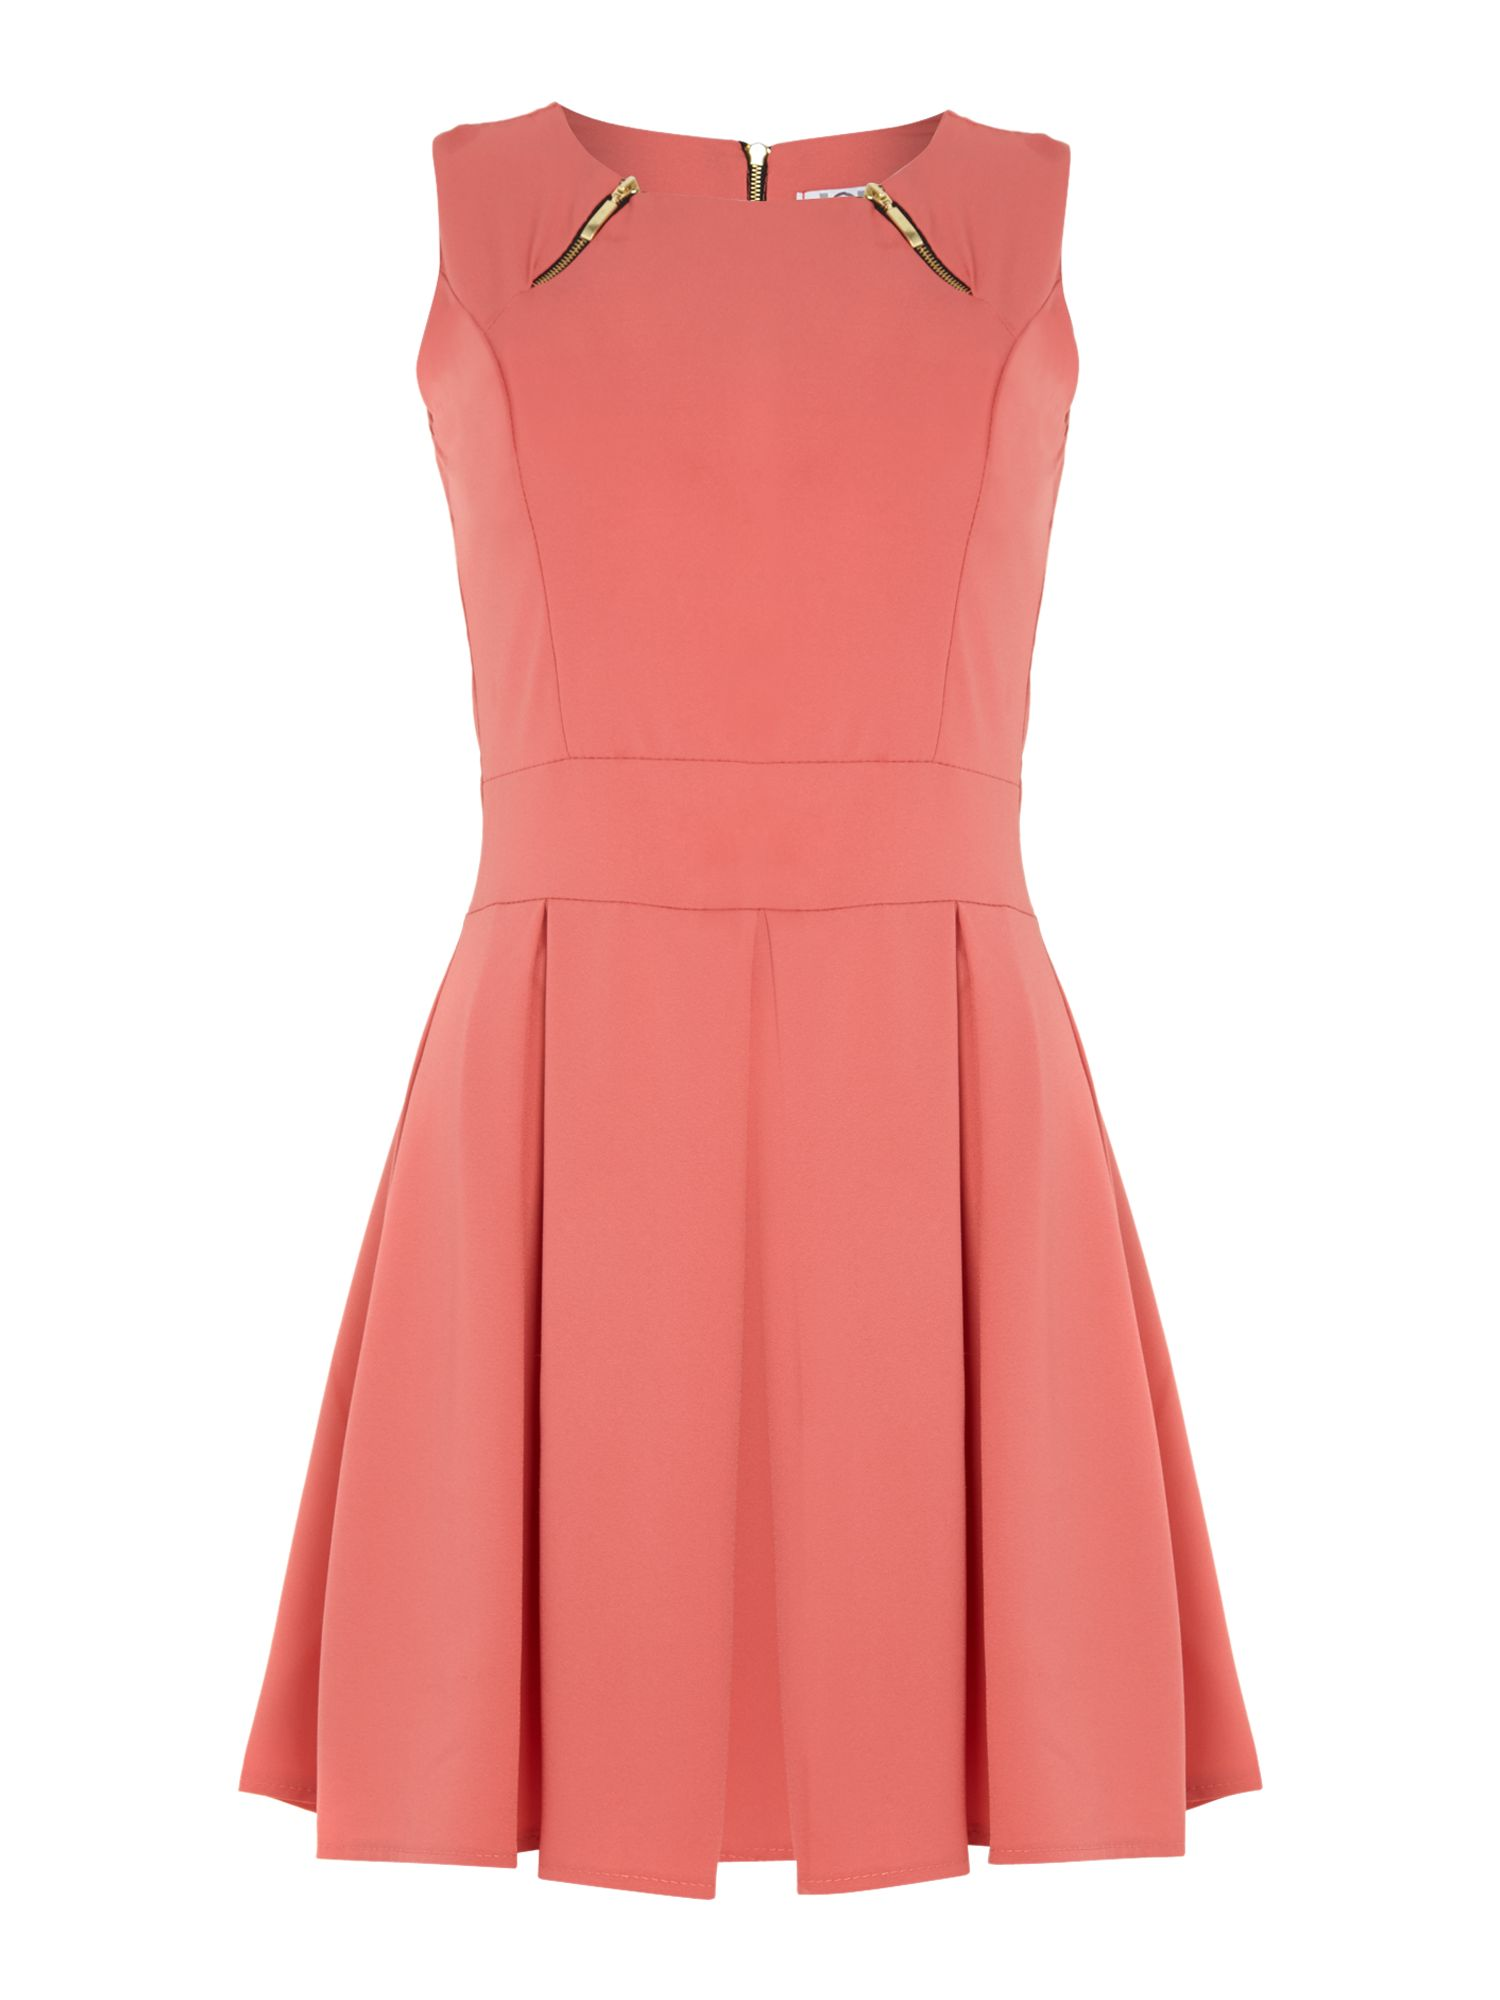 Sleeveless zip detail front dress